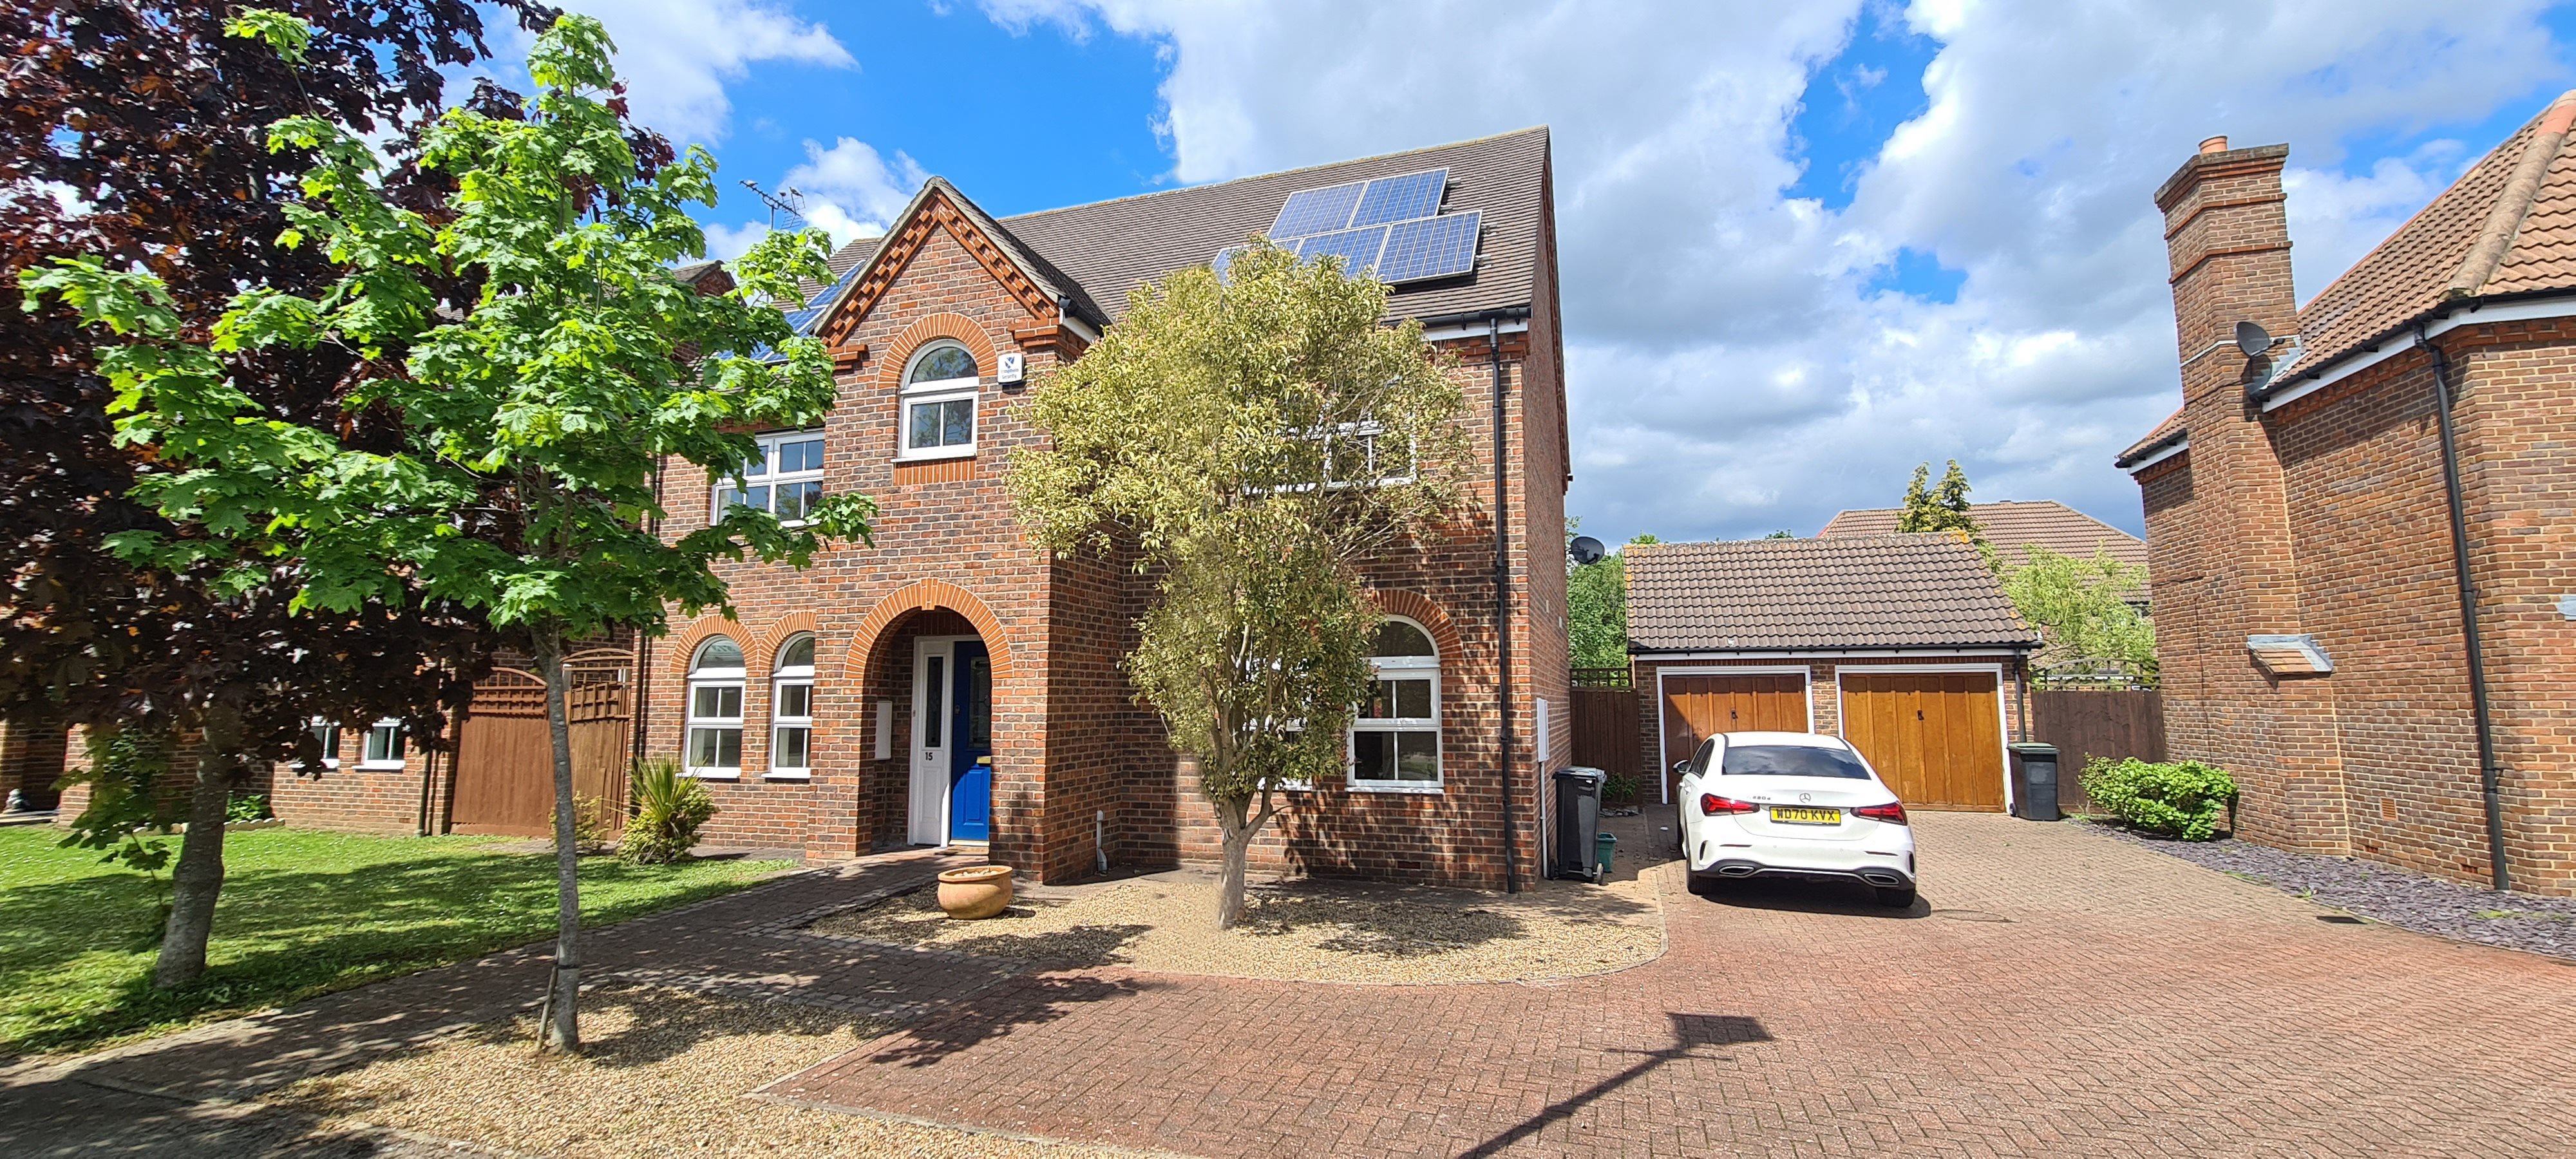 4 bed detached house to rent, Waltham Abbey  - Property Image 1